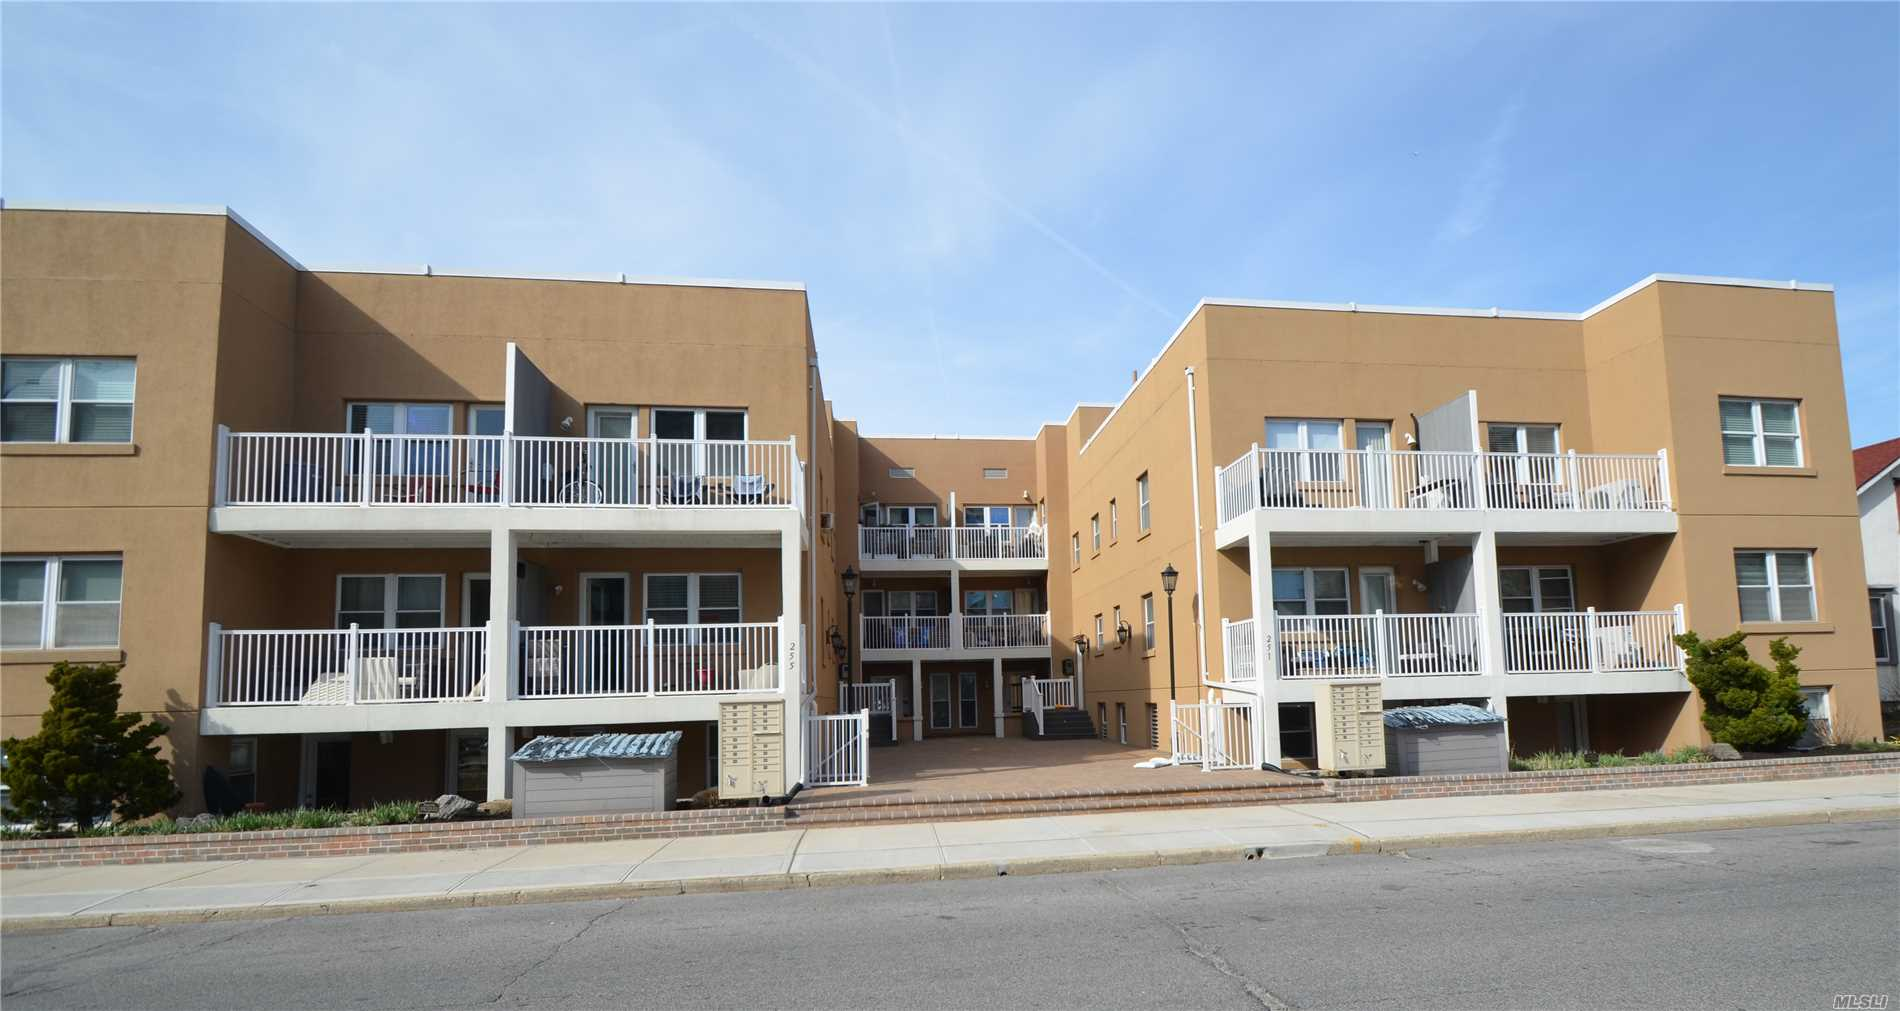 Fabulous ground floor condominium unit offers 2 bedrooms and 763 sf of living area. Walk to the ocean and boardwalk. Rooftop deck with views of the ocean and beach. Monthly common charges includes heat, water, flood insurance and general maintenance.